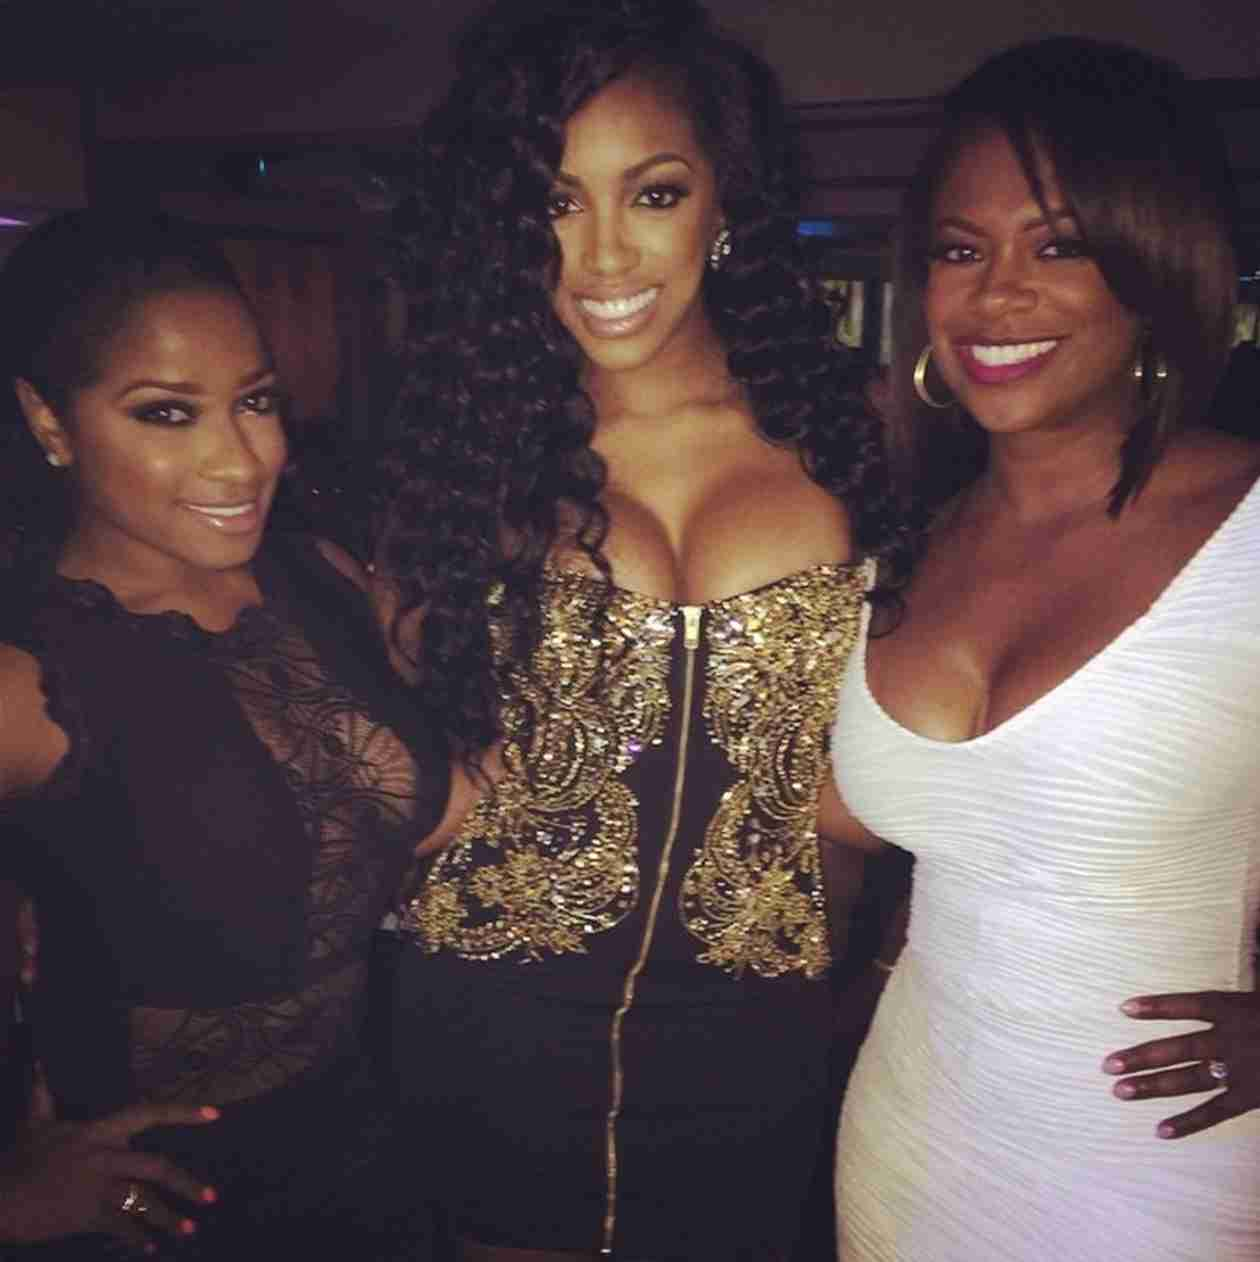 Kandi Burruss: Porsha Stewart Won't Be a Part of the A Mother's Love Tour